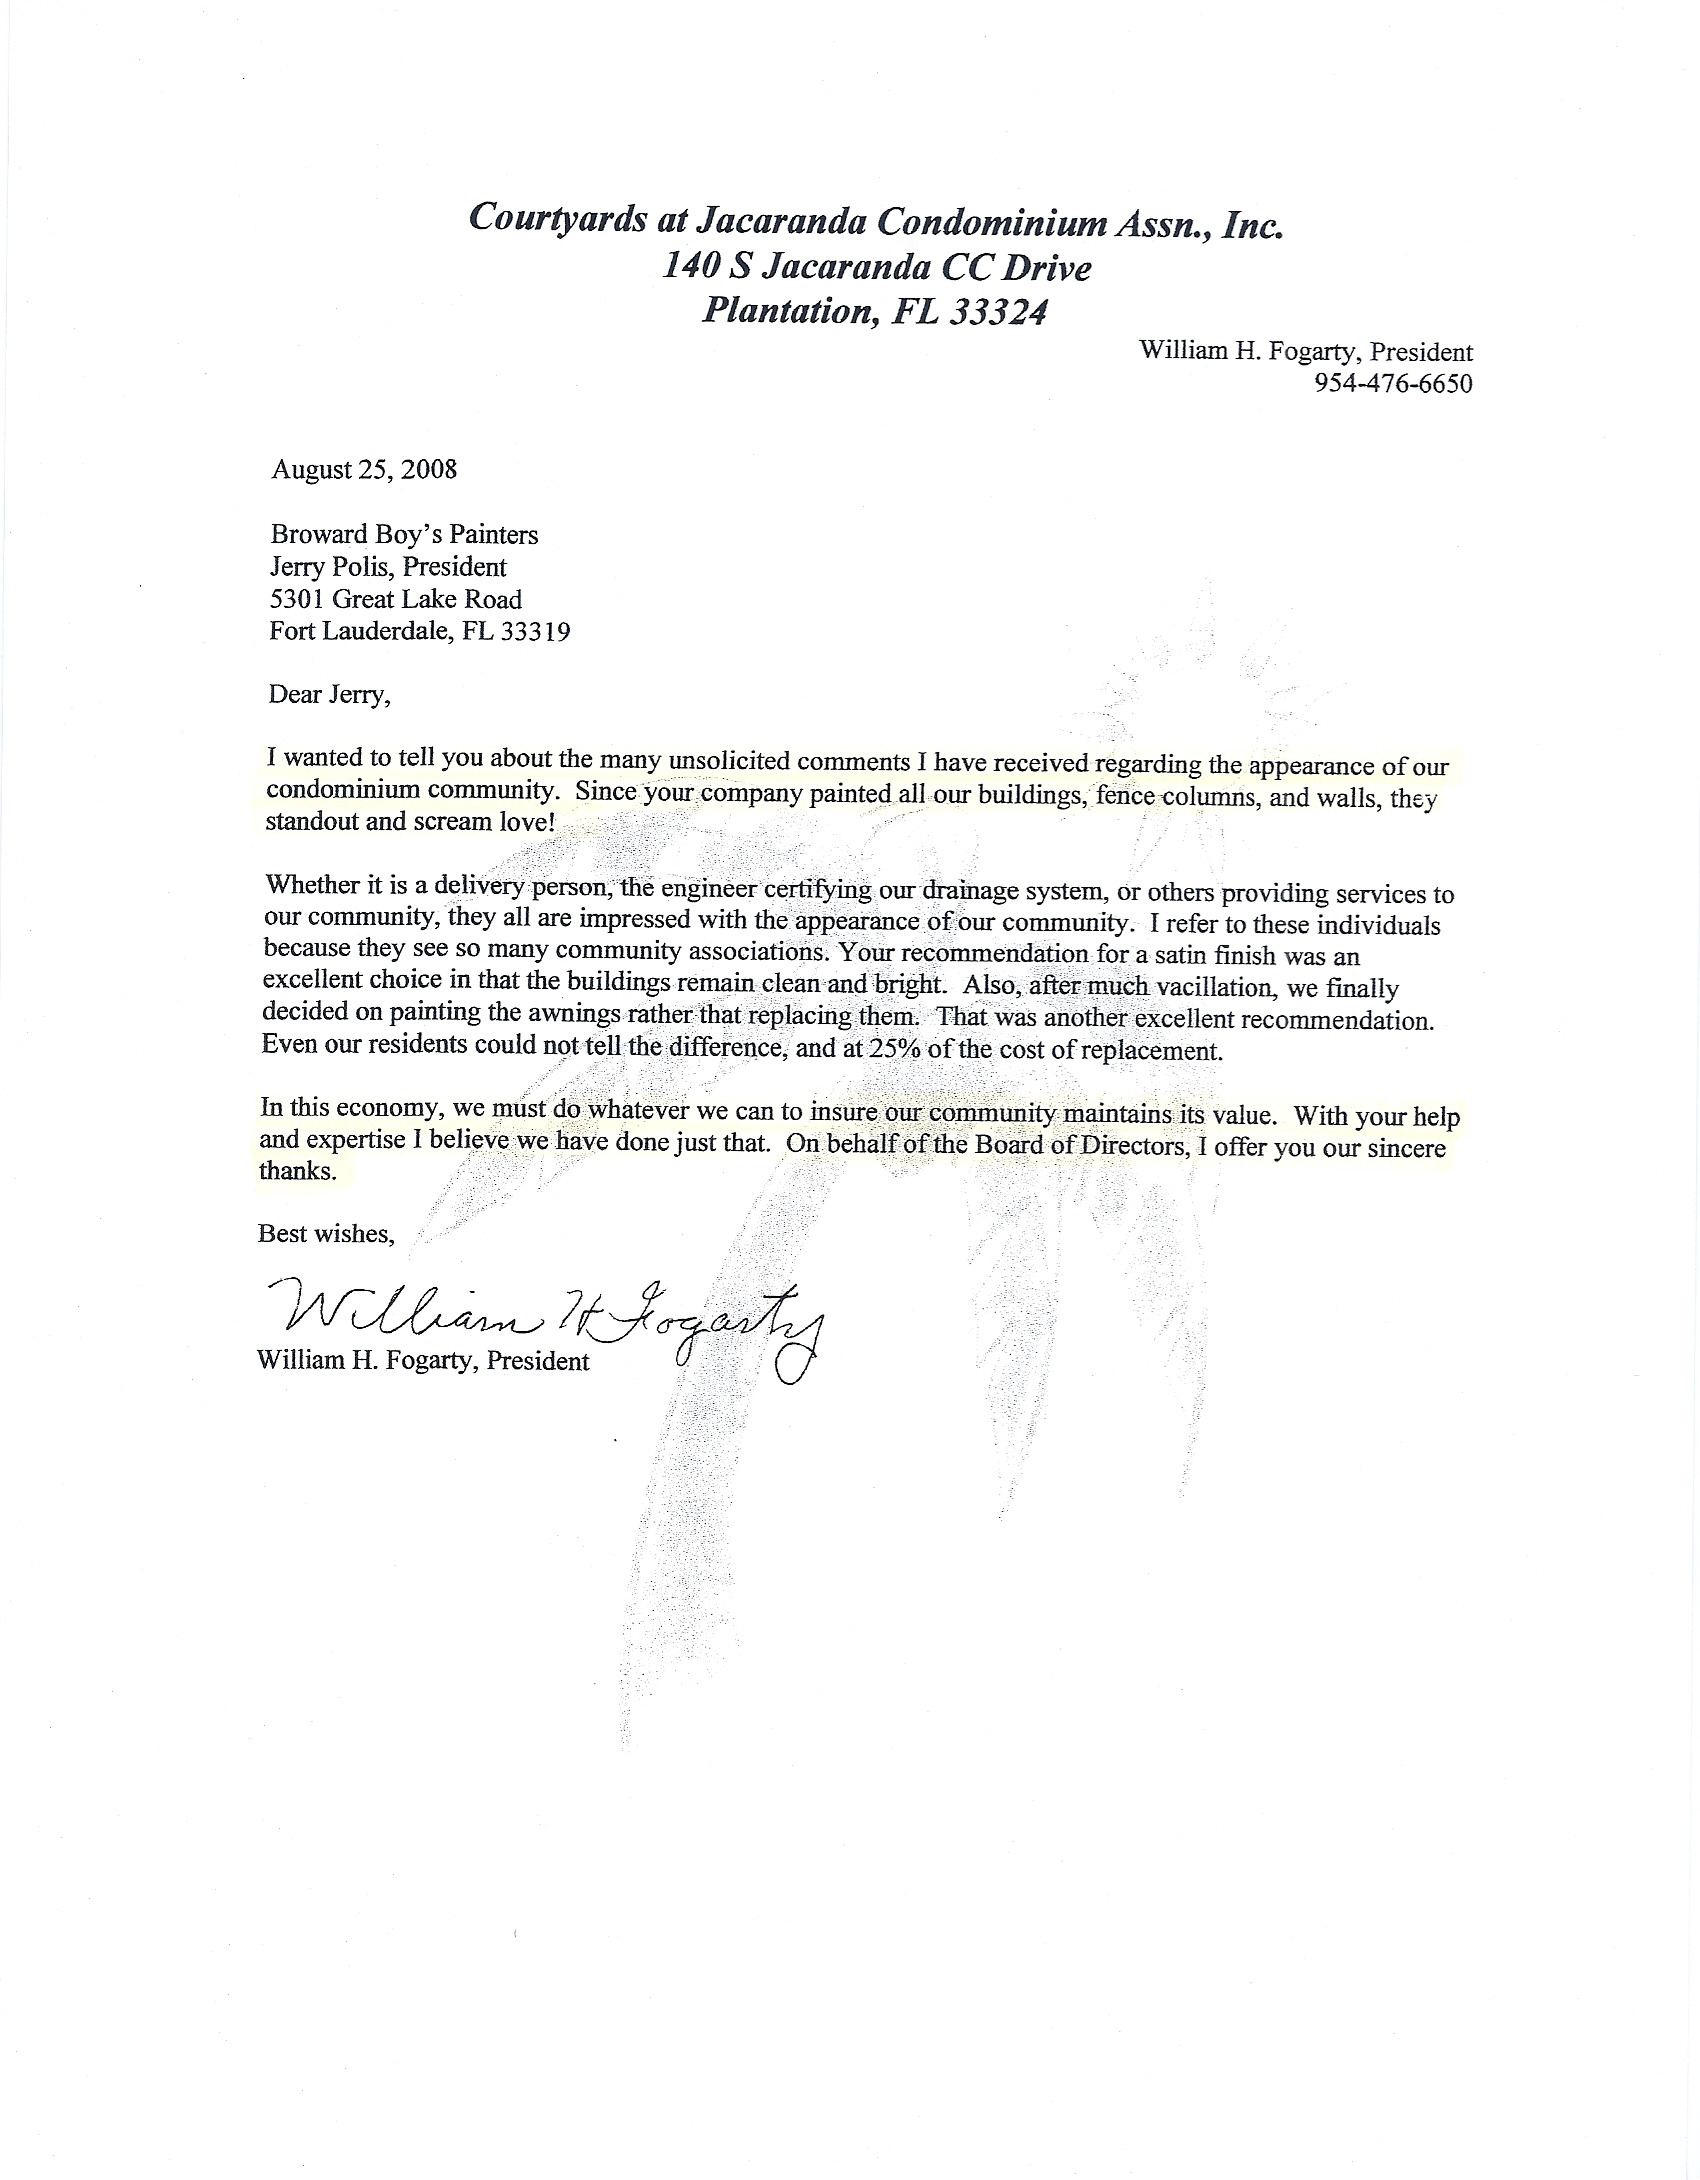 Broward Painters, Broward Painting, Commercial Painting ... on government letter template, therapeutic letter template, investment letter template, corporate letter template, certified letter template, medical letter template, short sale letter template, contractor letter template, move in letter template, service letter template, urban letter template, contract letter template, professional letter template, office letter template, bid request letter template, workplace letter template, plumbing repair letter template, rental letter template, relocation letter template, day care letter template,